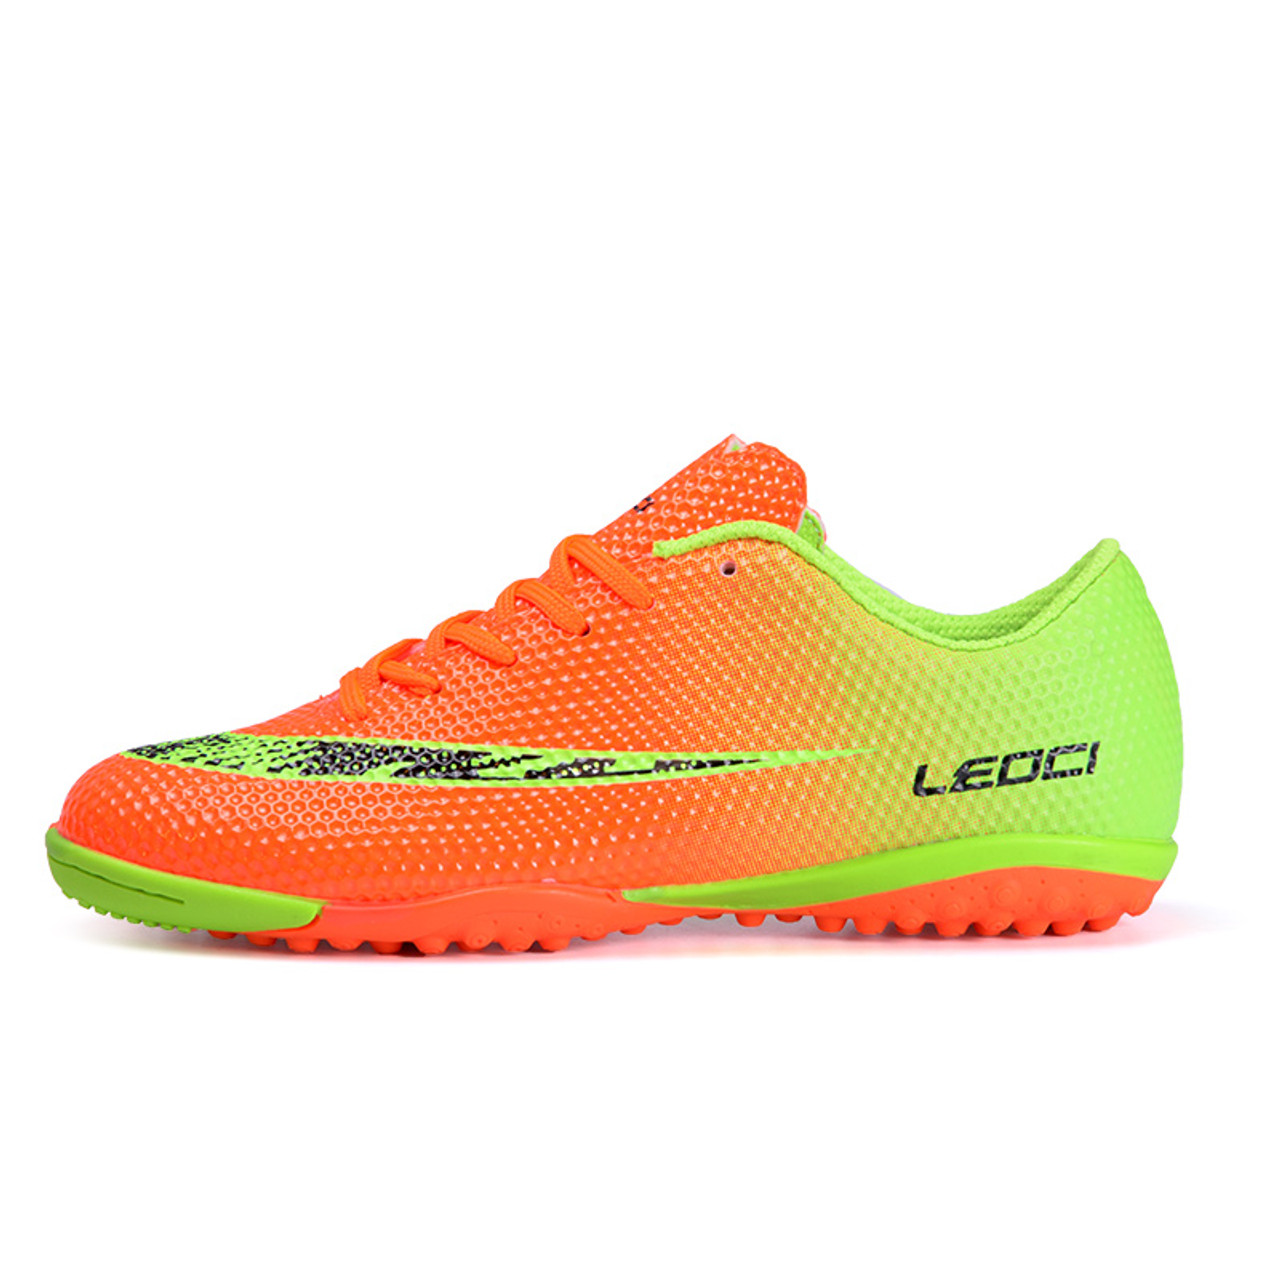 Men Broken Nails Football Shoes Long Spikes Soccer Cleats For Adult  amp   Children Newest Training Football Boots TF FG Sneakers - OnshopDeals.Com e78dd94930af